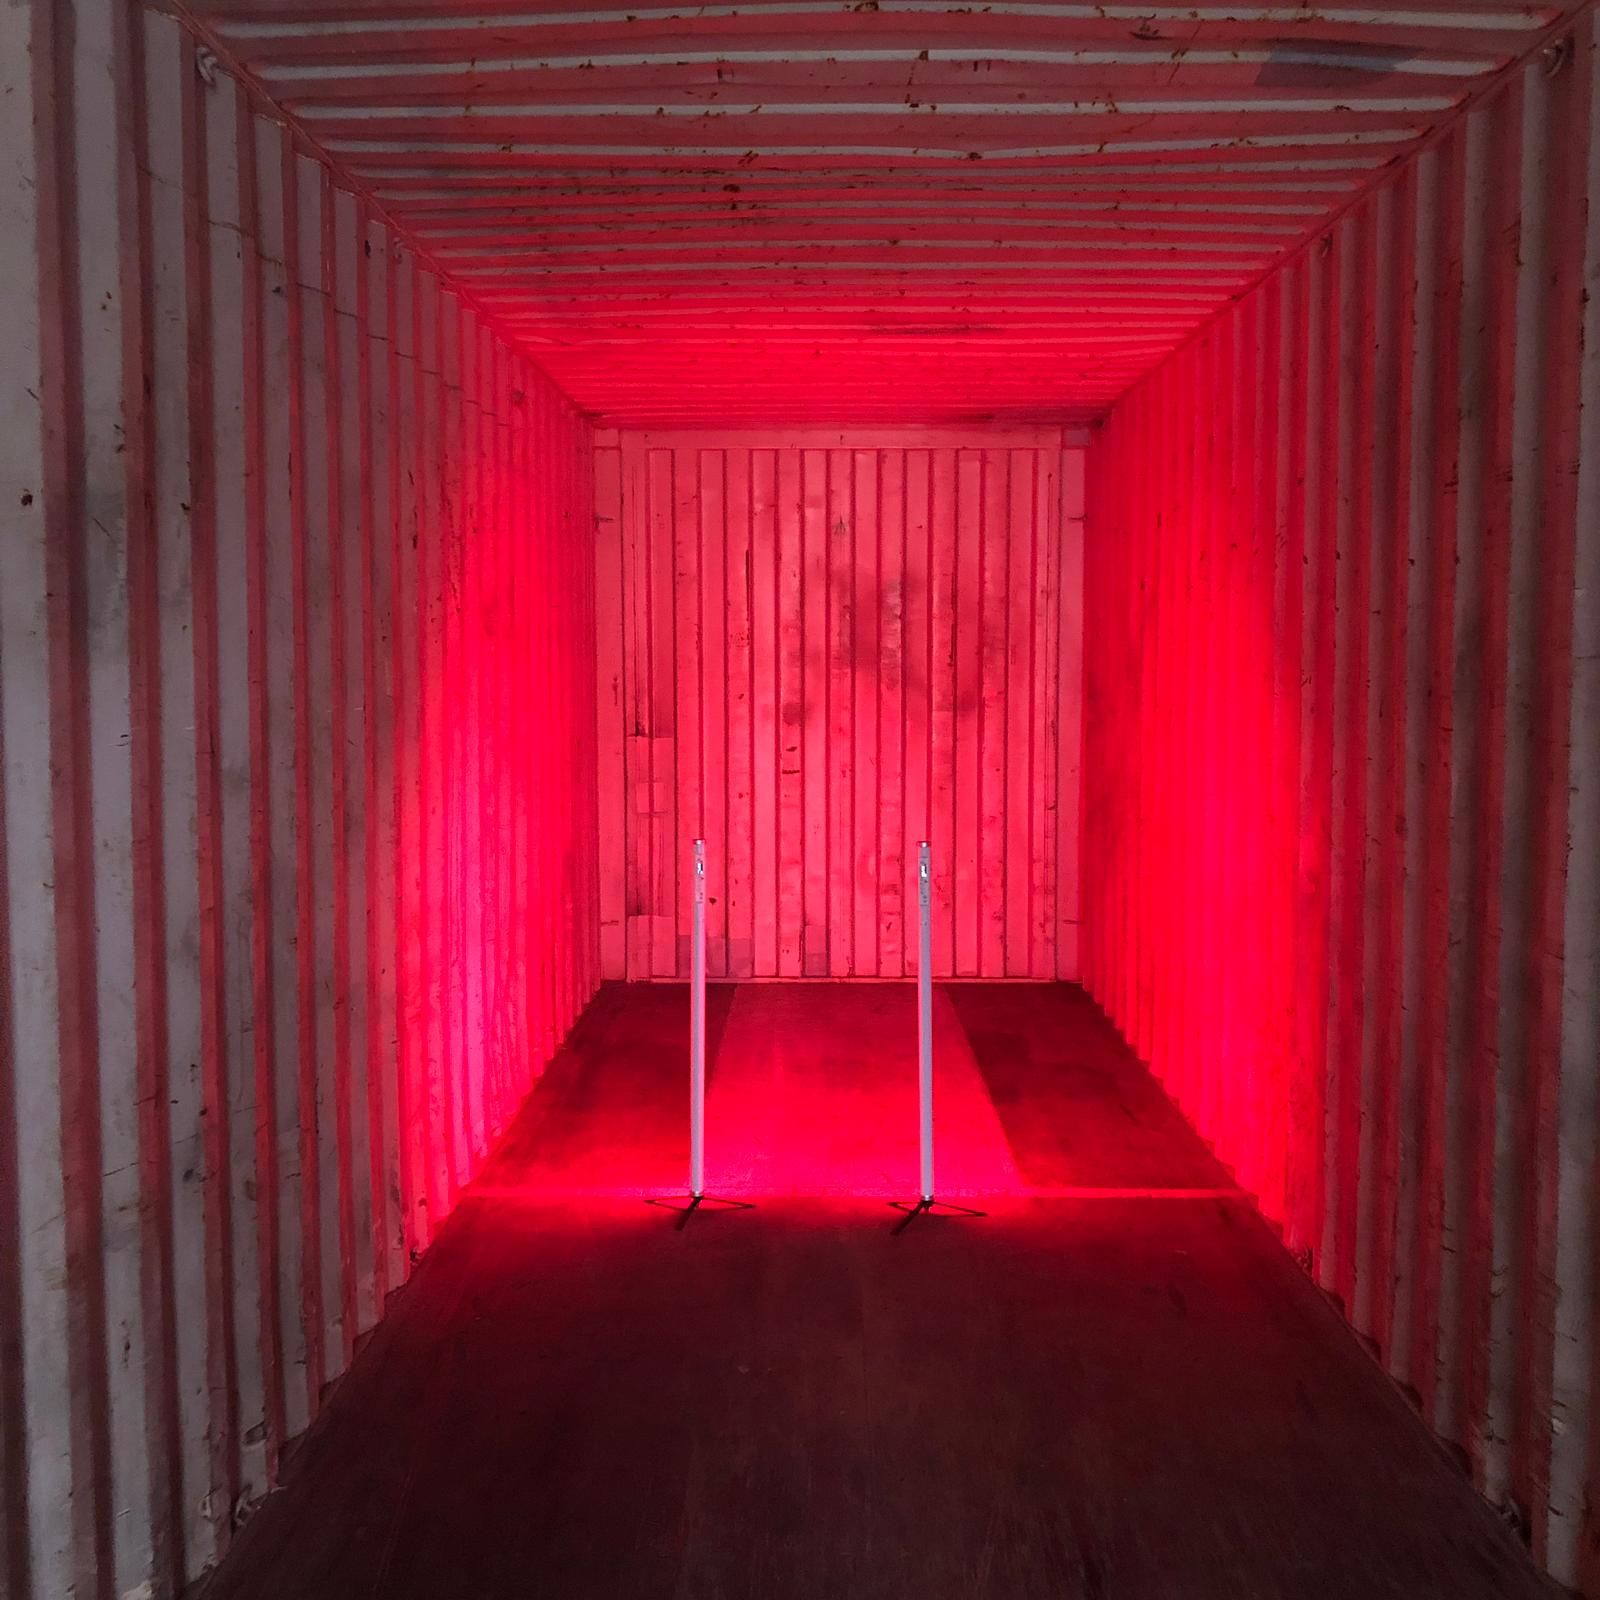 Container_Musikvideo_Rot_Beleuchtung